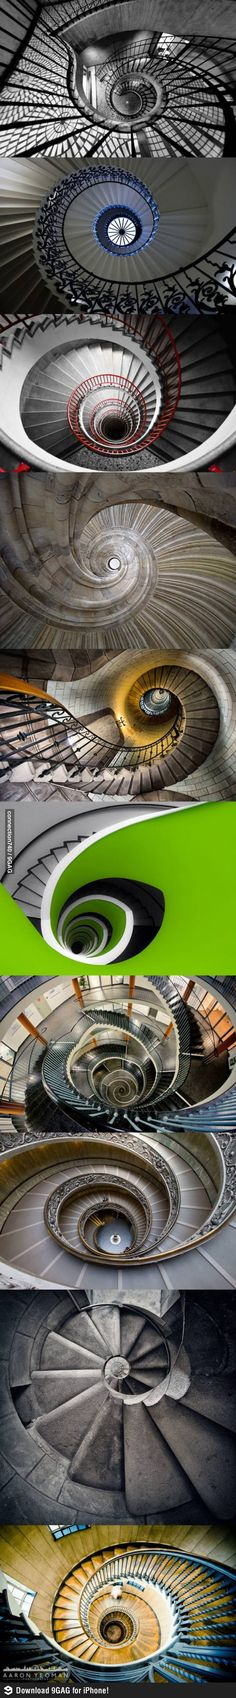 Awesome Spiral Stairs